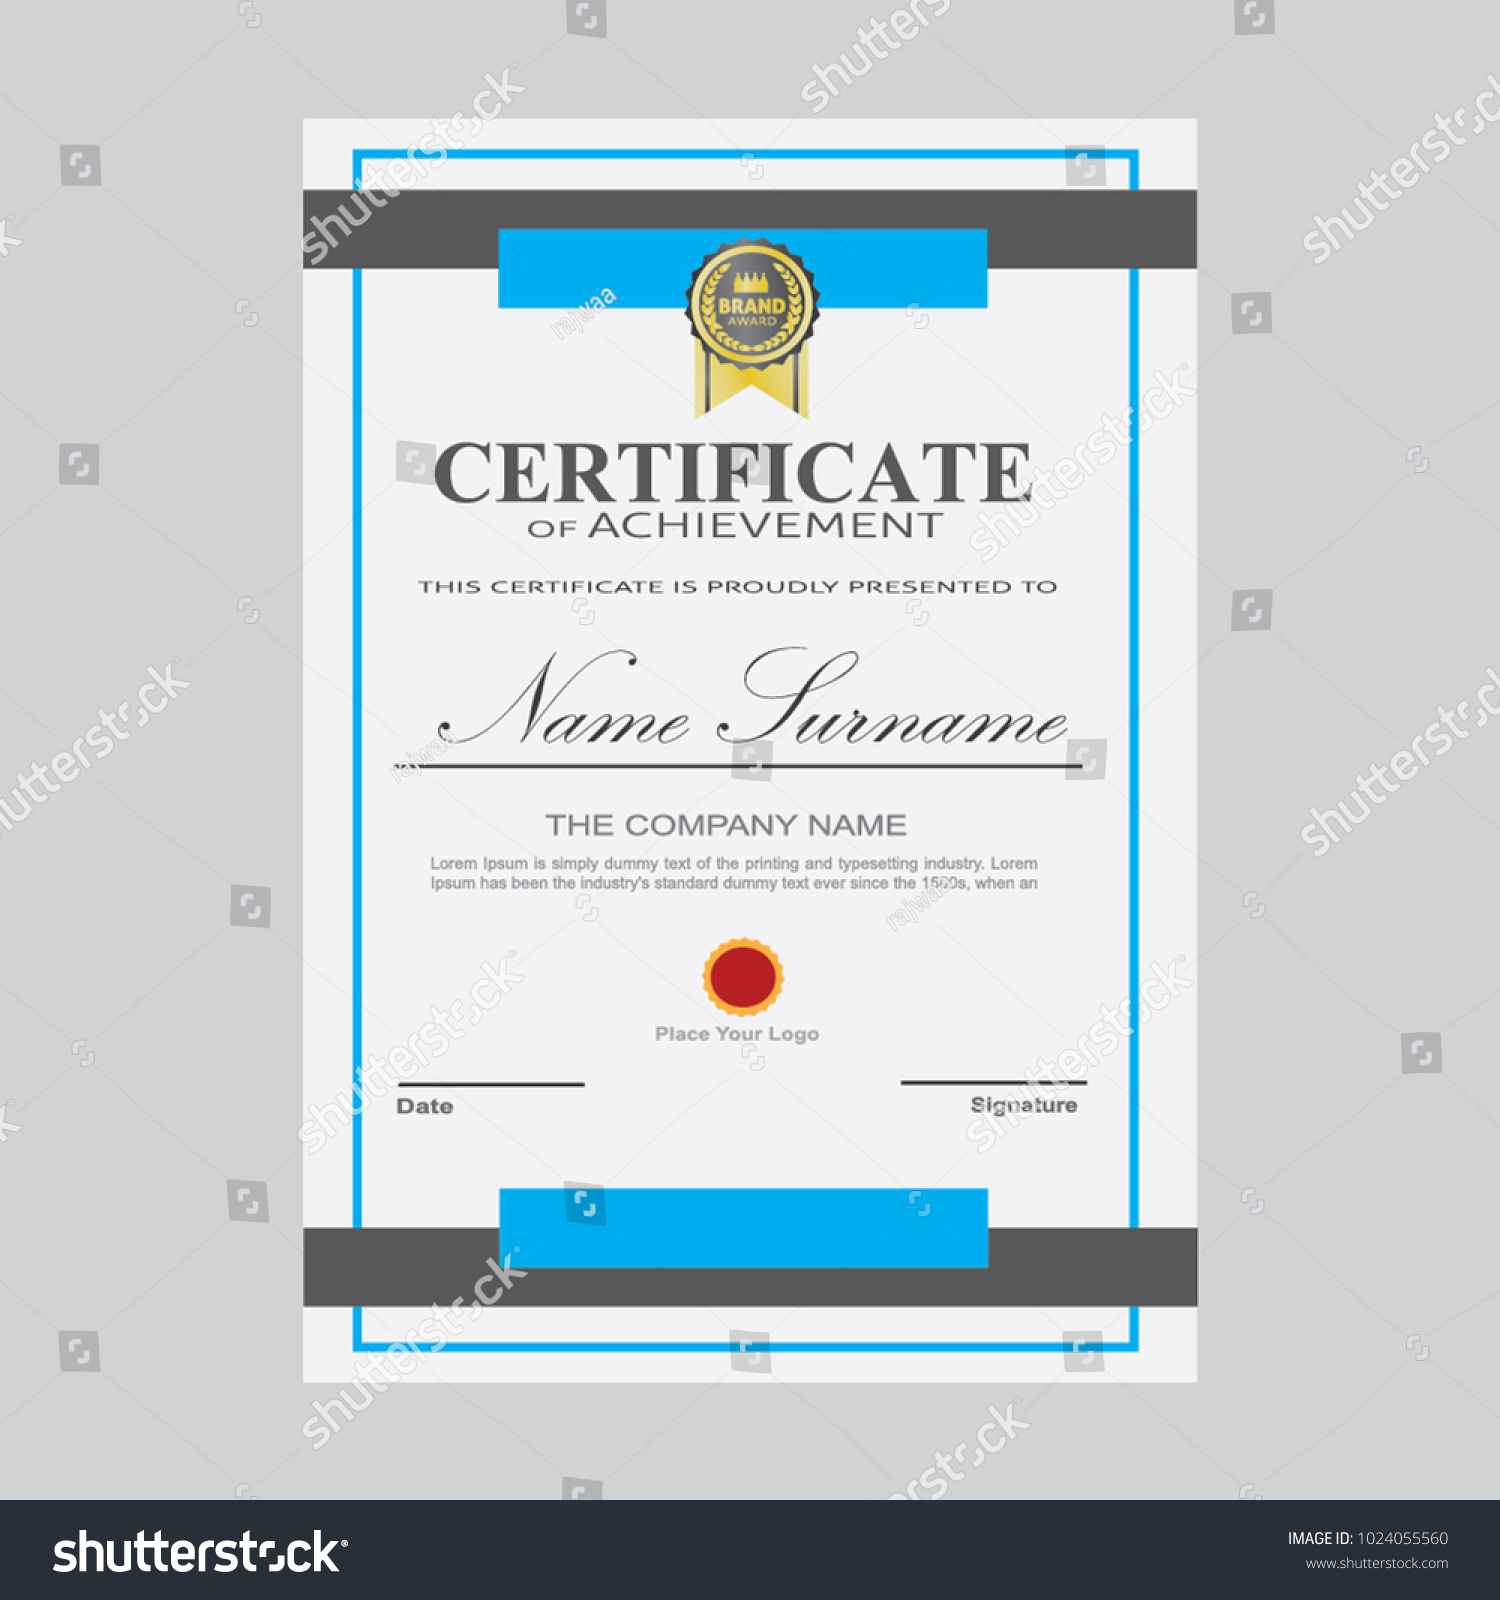 Certificate template modern a4 horizontal landscape stock vector certificate template modern a4 horizontal landscape design award elegant vector background business graduation achievement yadclub